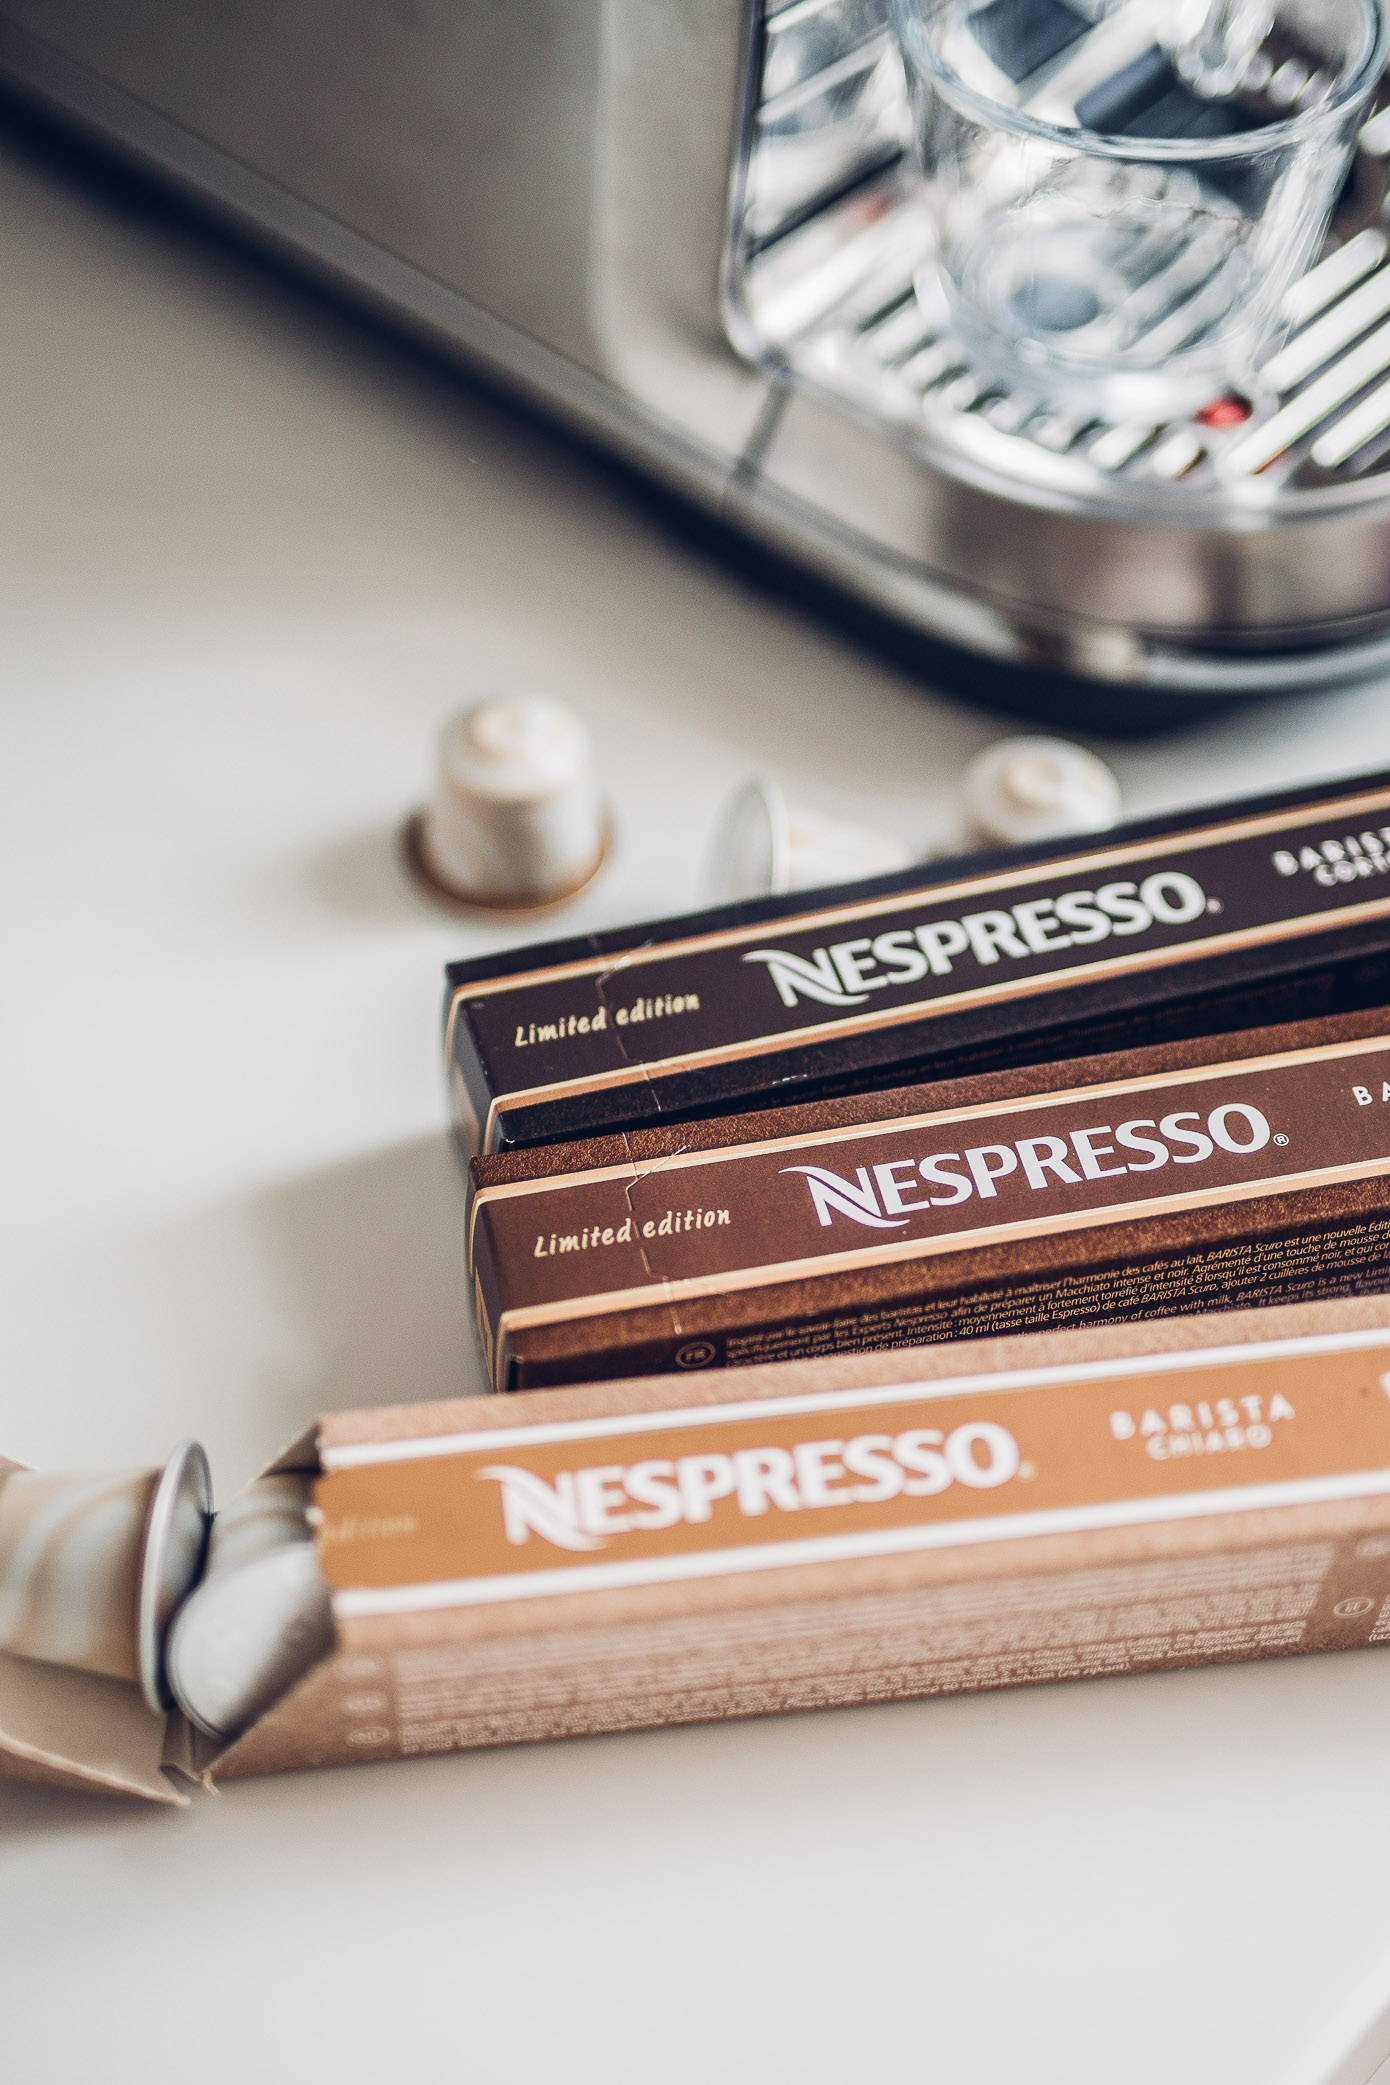 Nespresso, Creatista, barista, design, the art of coffee, Helmut Lang, Wendy & Jim